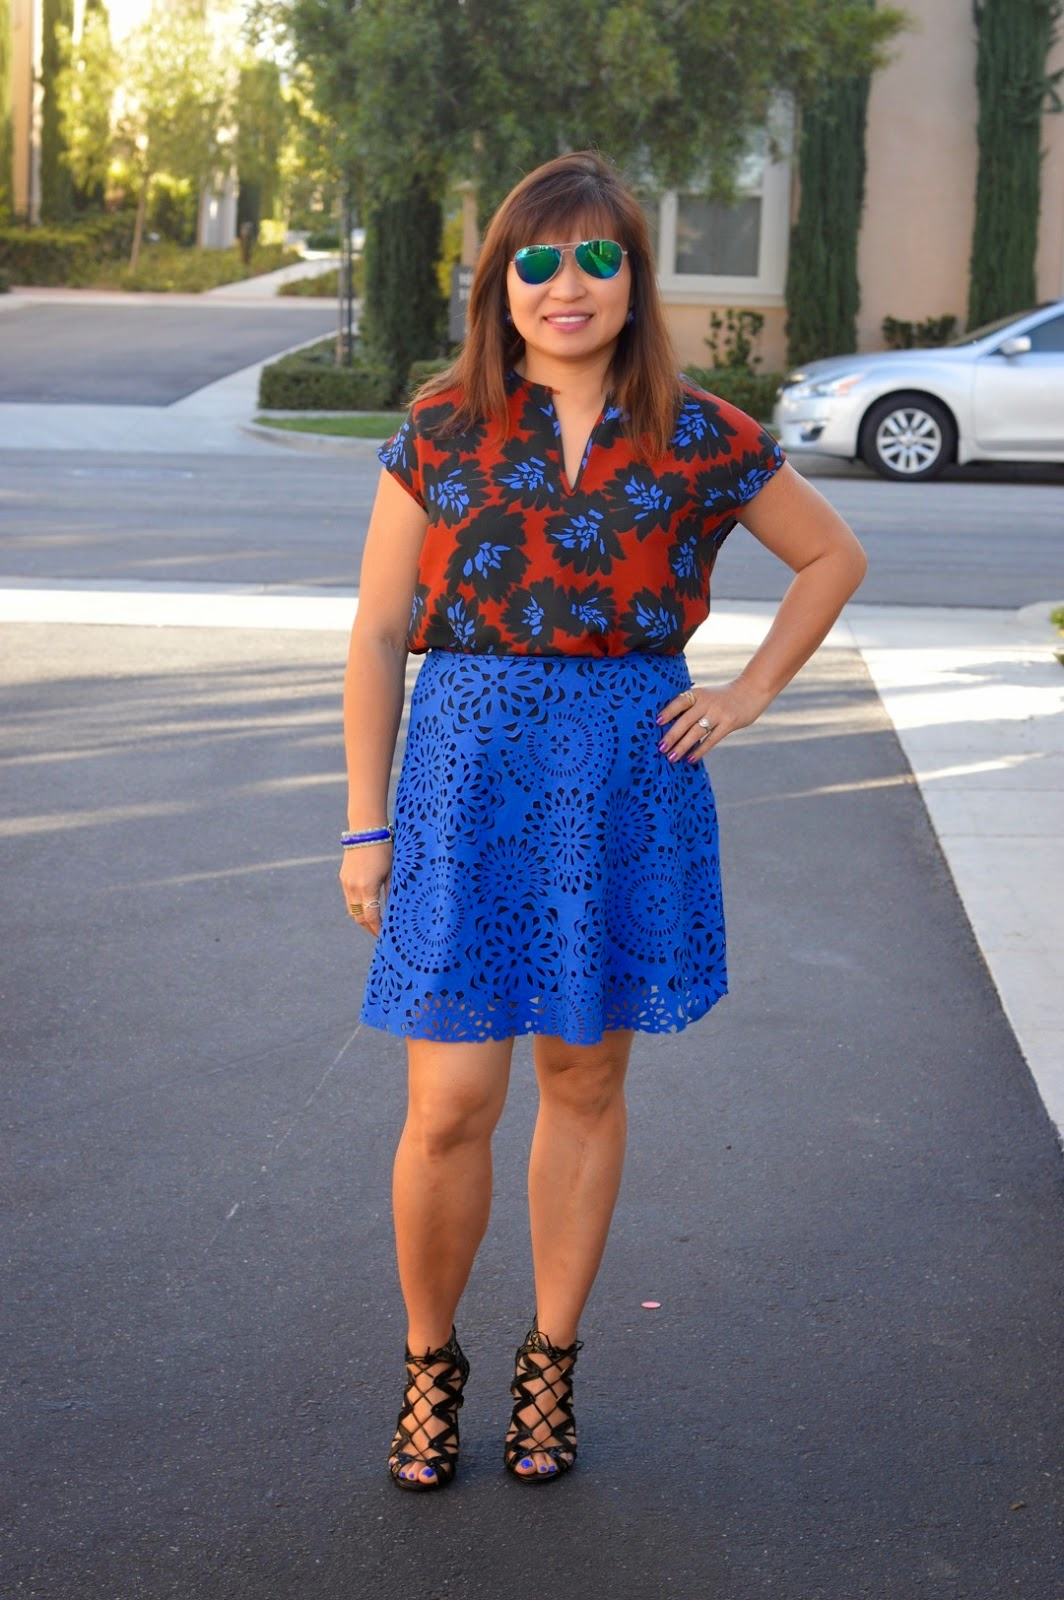 J Crew Floral Fireworks Top, Pattern Mixing, Fashion Over 40